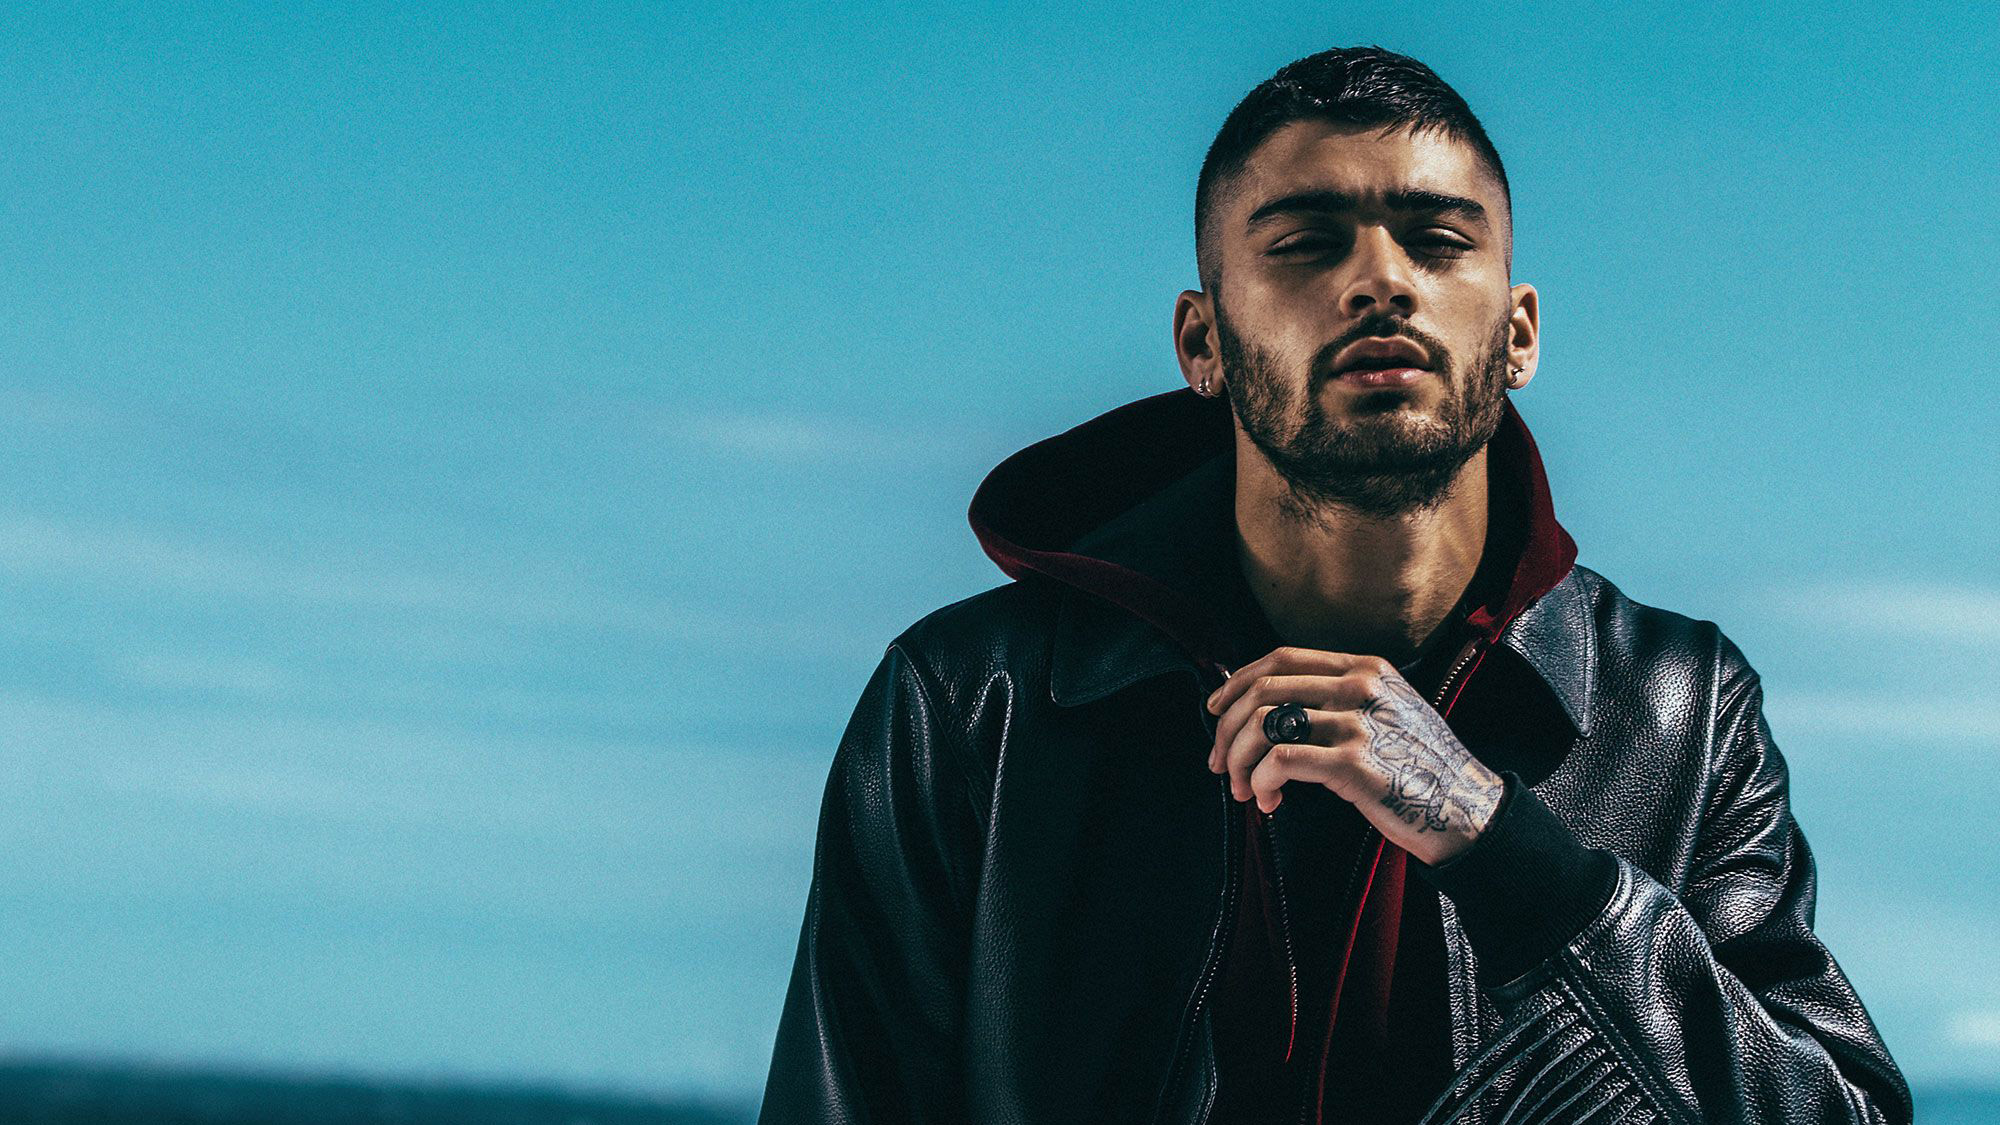 zayn 2018 hd music 4k wallpapers images backgrounds